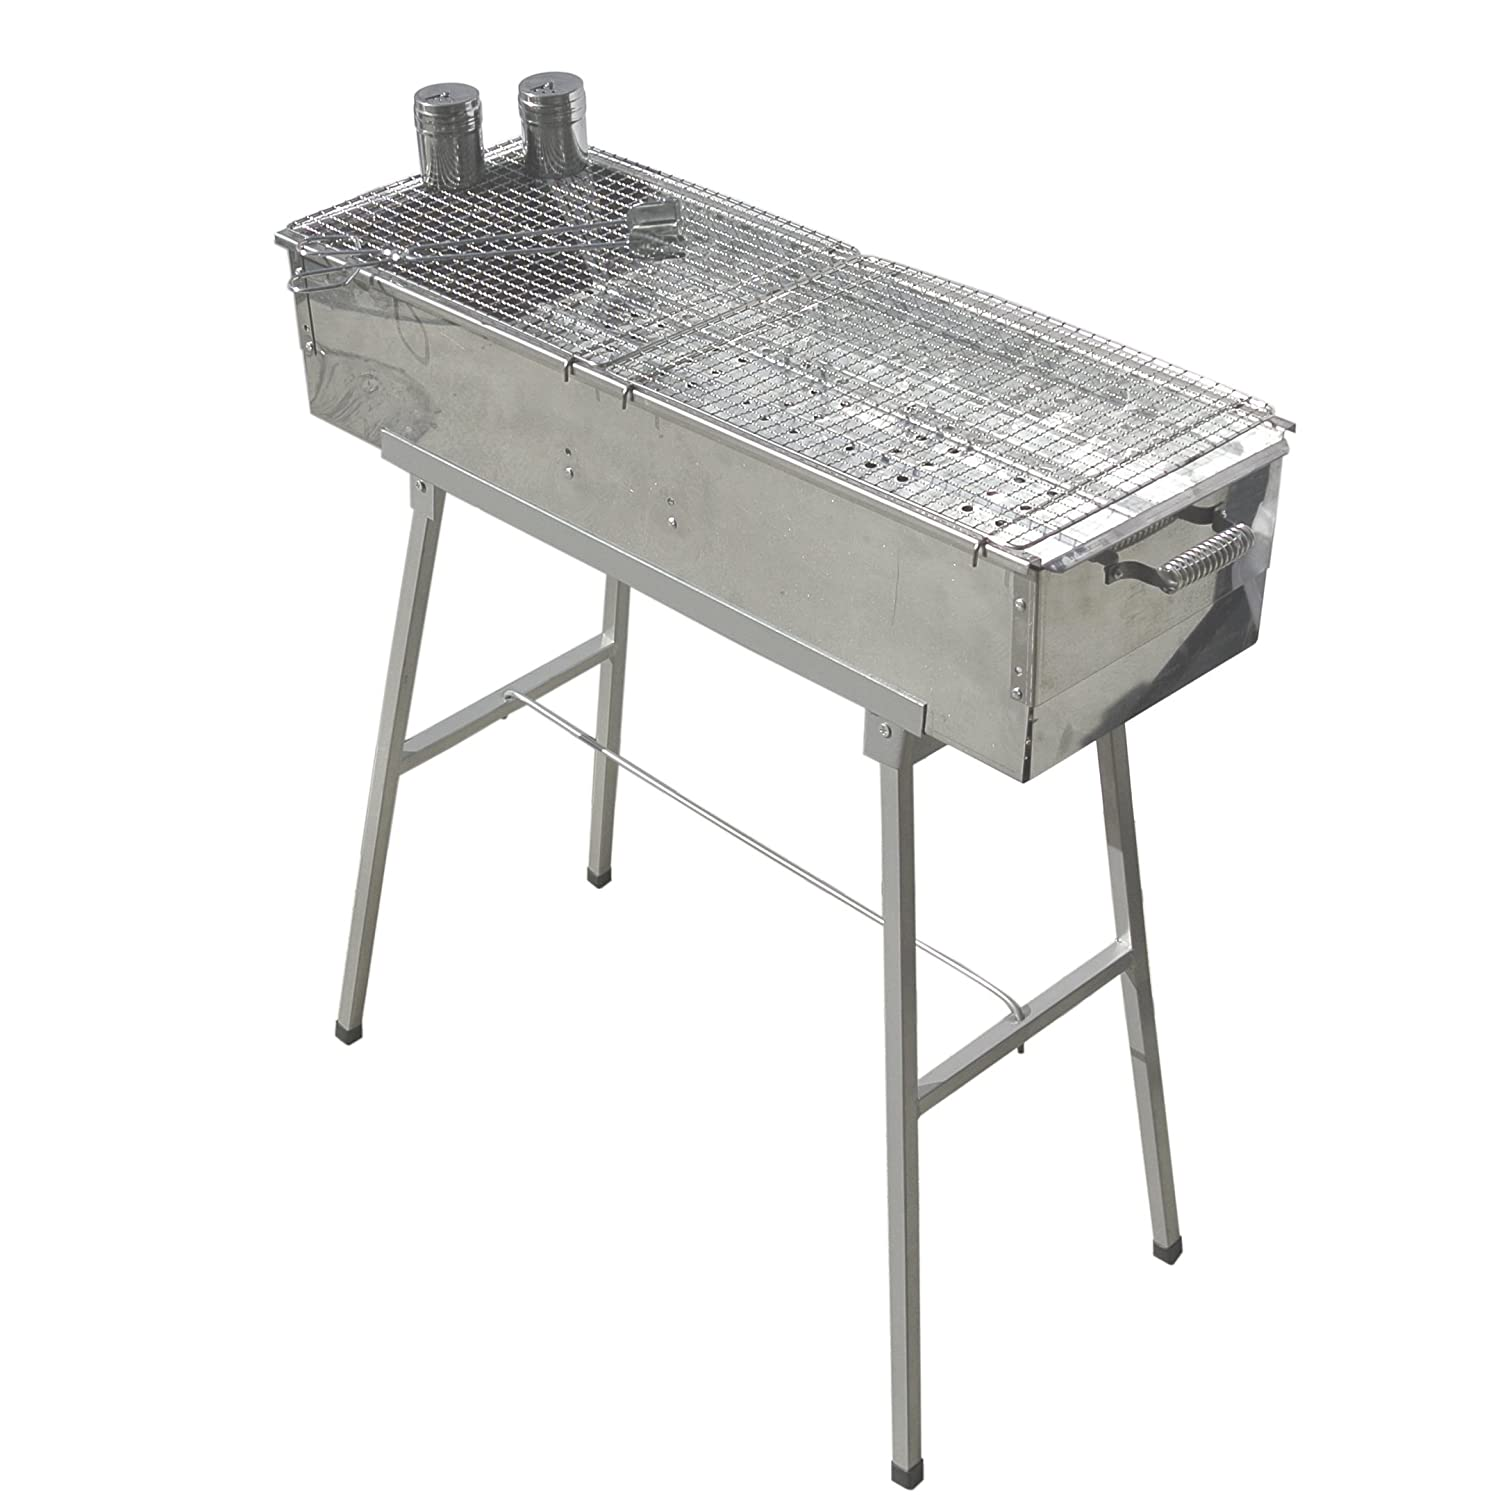 "Party Griller Yakitori Grill 32"" x 11"" - Portable Stainless Steel Charcoal Barbecue Grill w/ 2X Stainless Steel Mesh Grate. BBQ Kebab, Satay. Makes Juicy Shish Kebob, Shashlik, Spiedini on The Skewer"